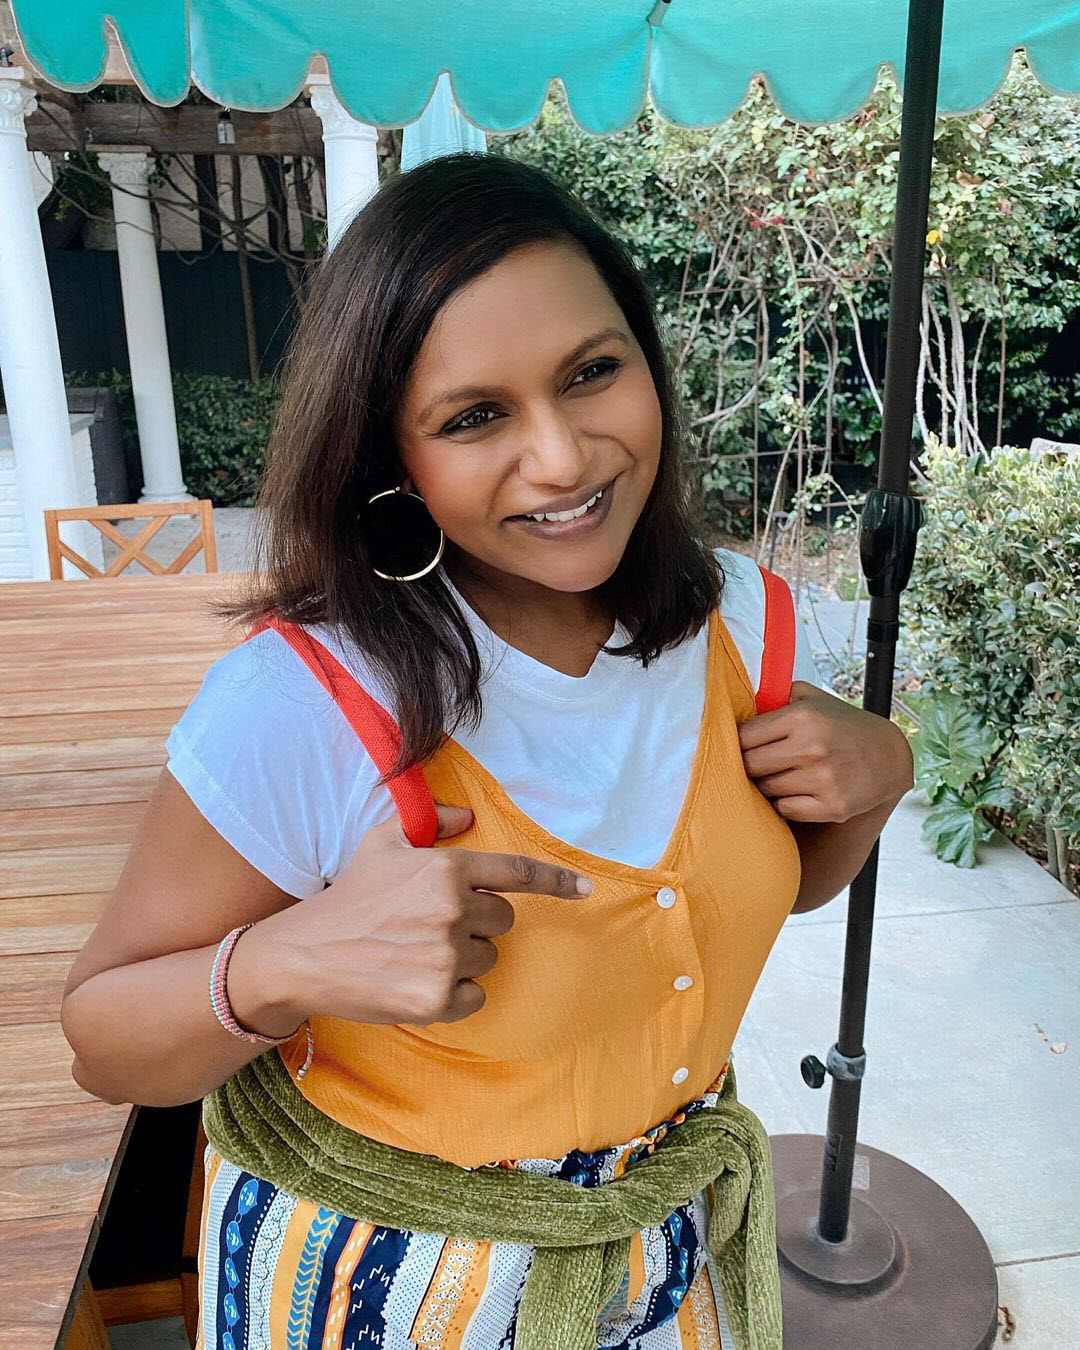 Mindy Kaling Dresses Up as 'Never Have I Ever' Character for Halloween